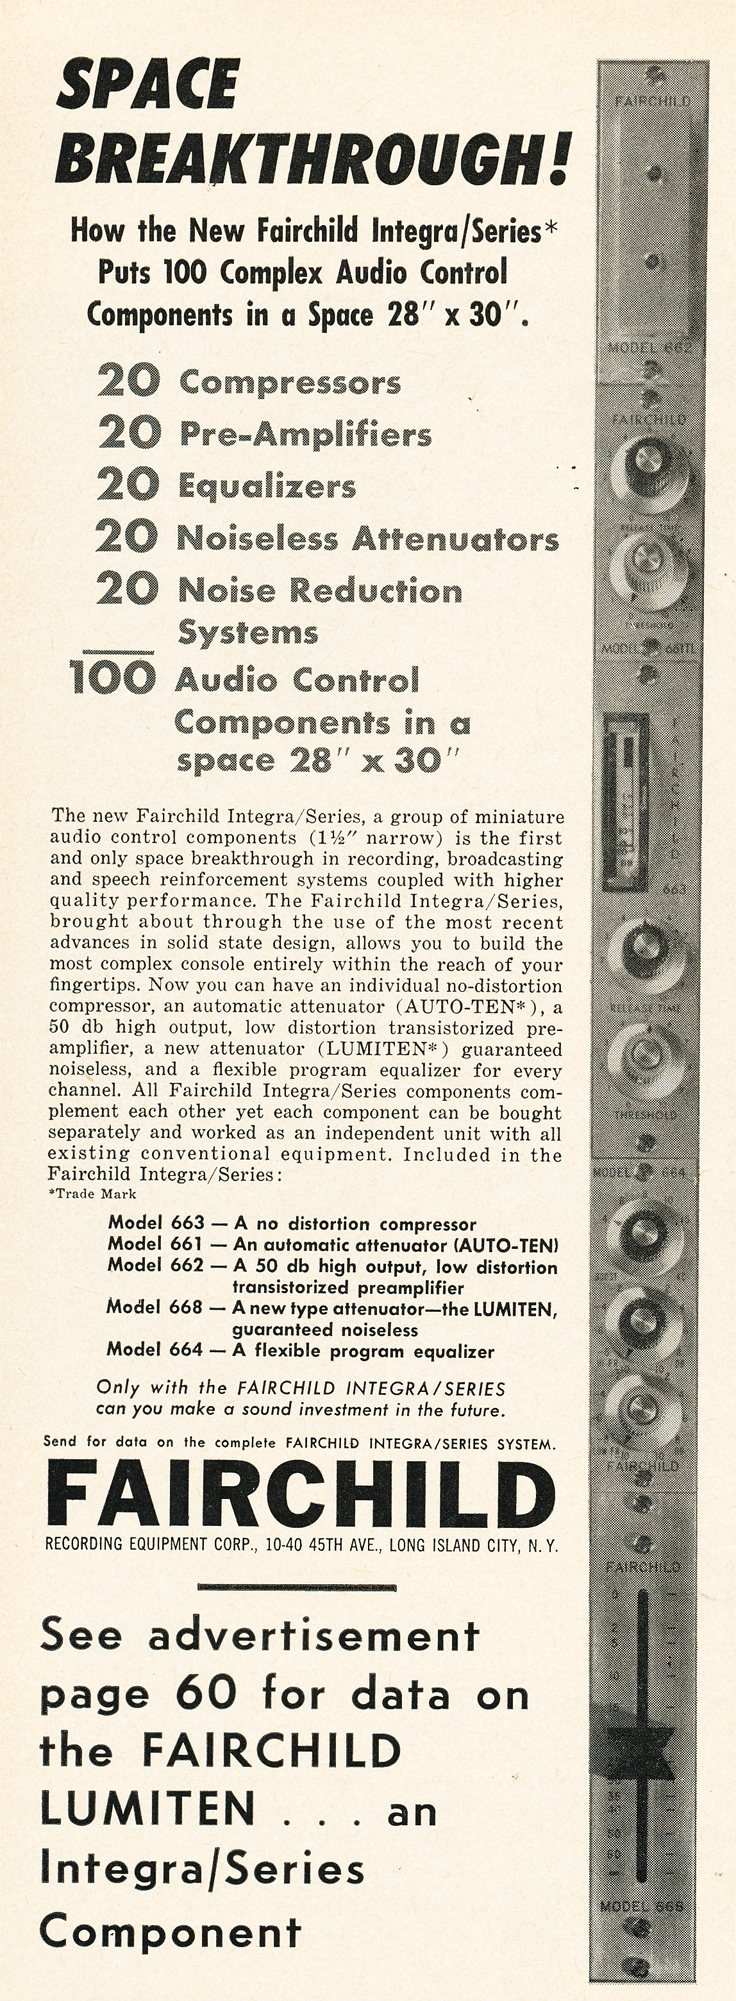 1962 ad for Fairchild Audio in Reel2ReelTexas.com's vintage recording collection